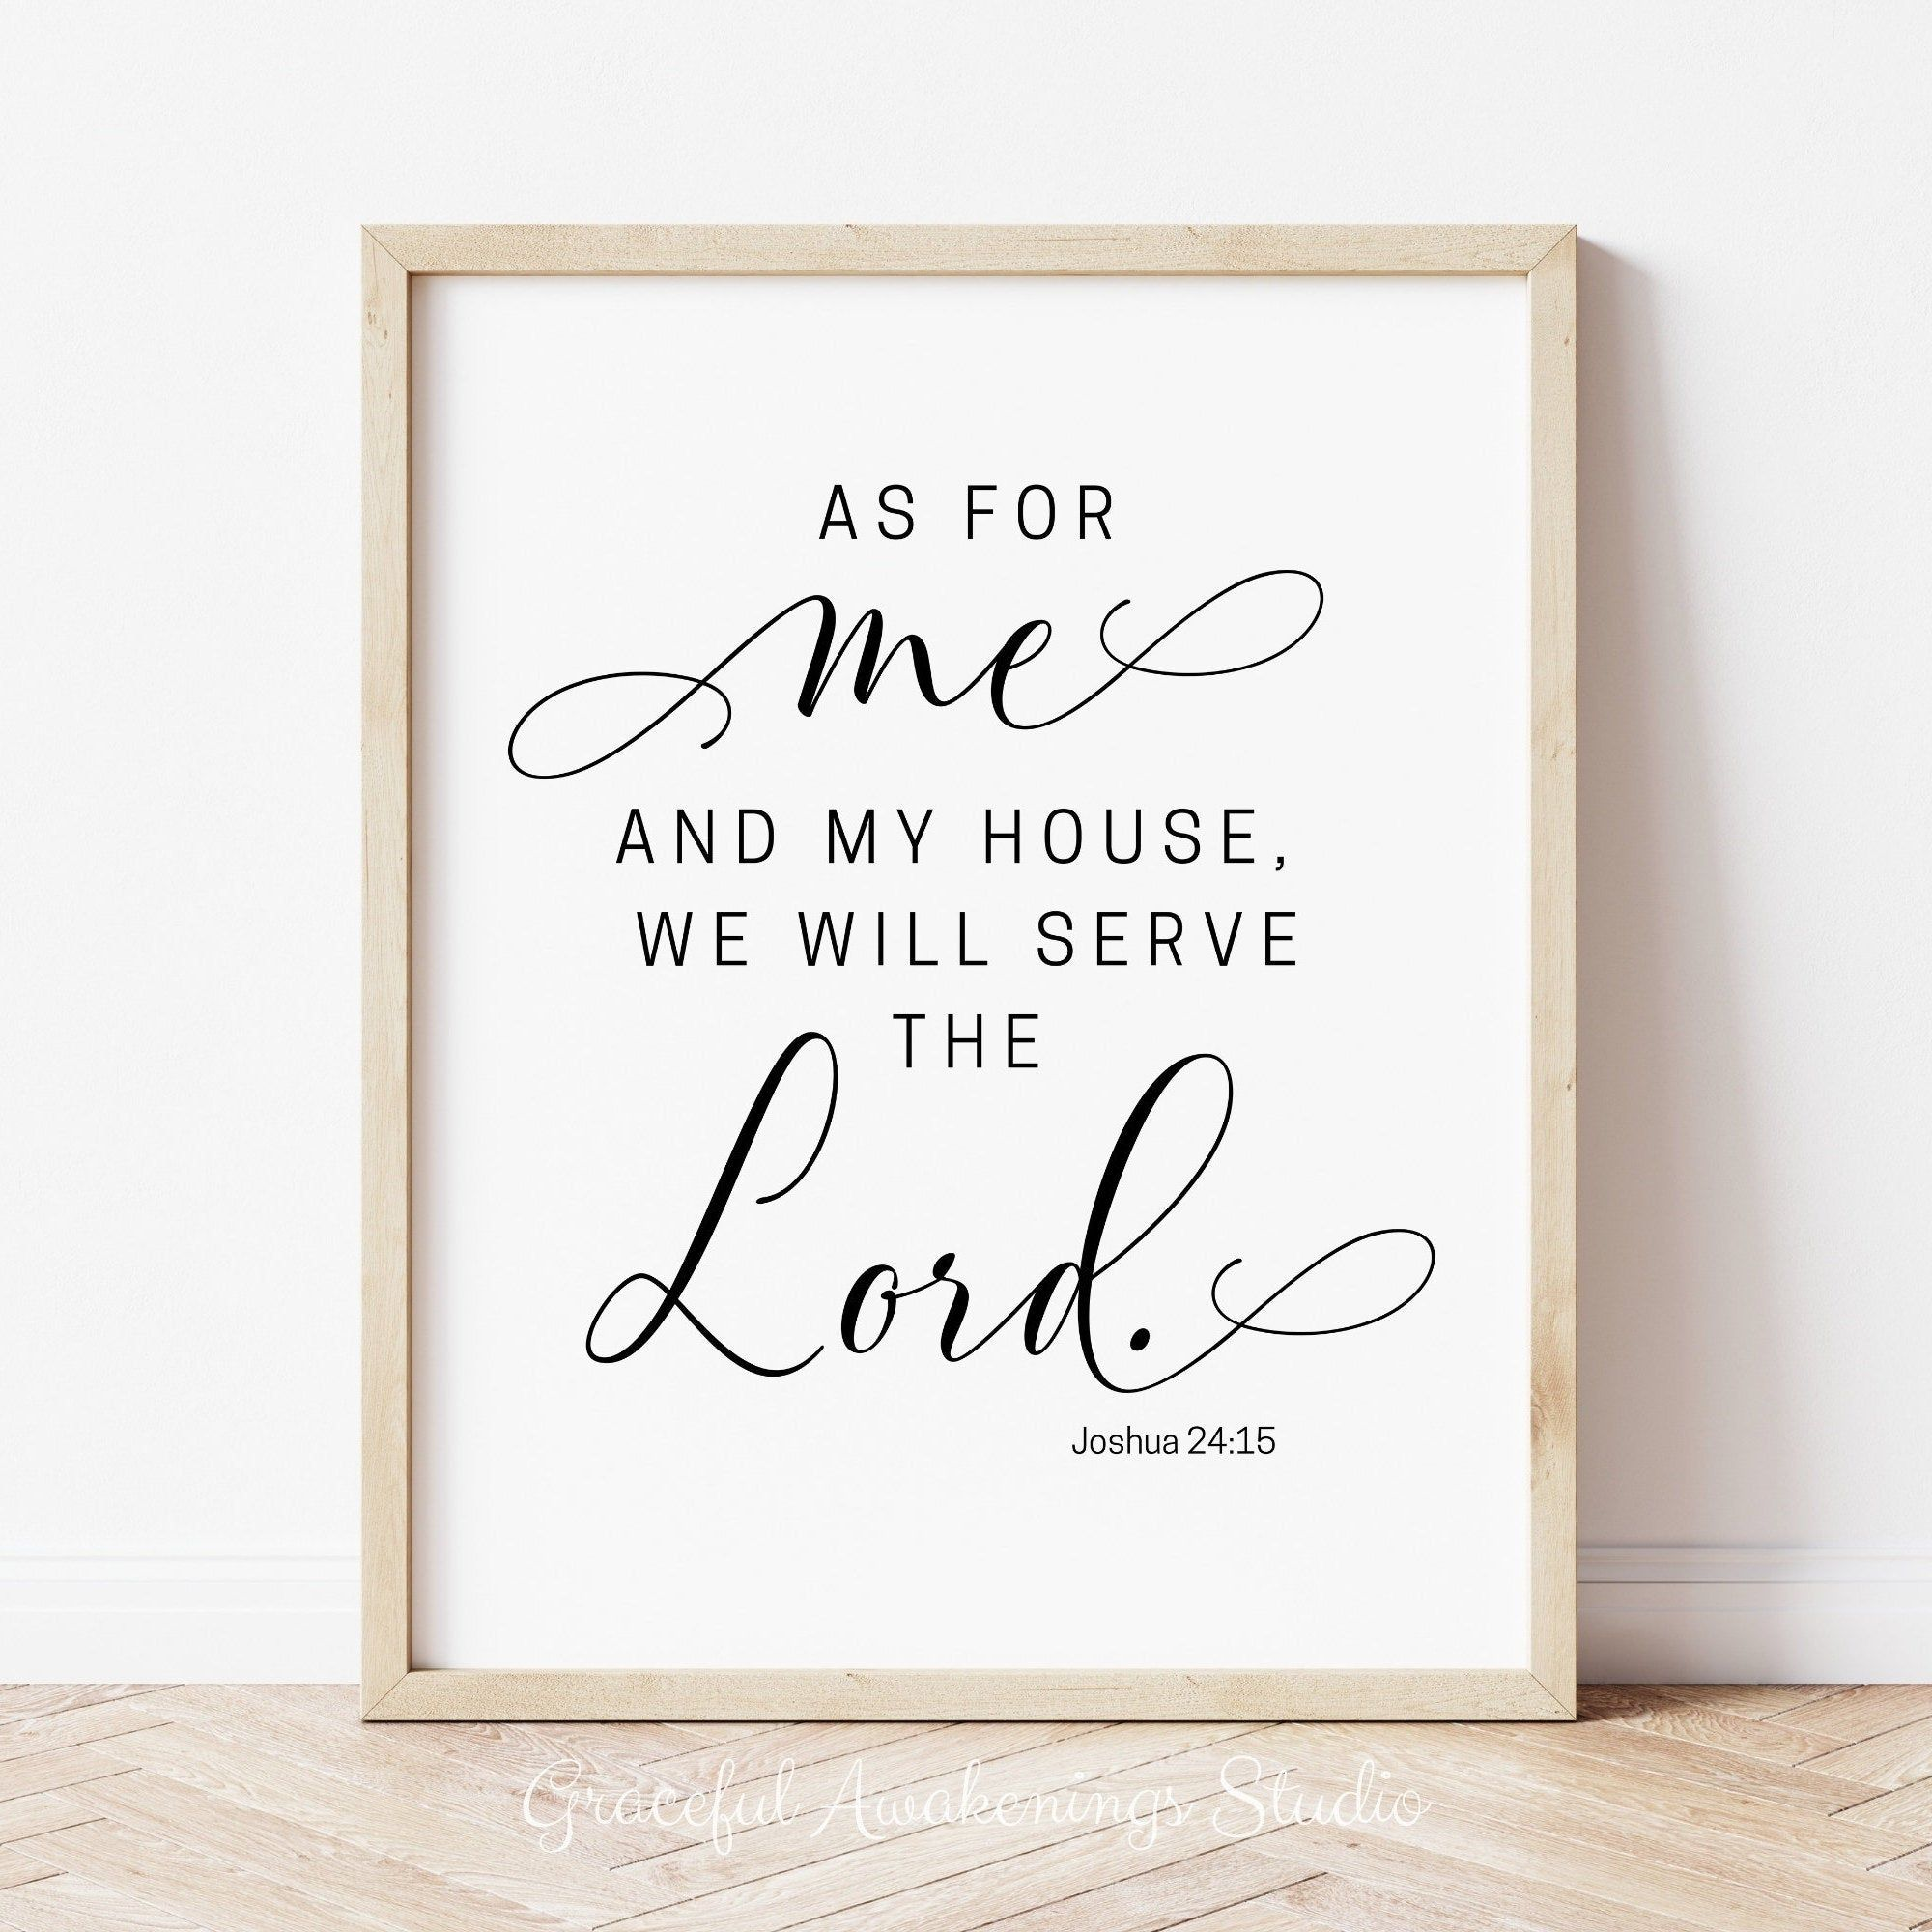 As For Me And My House We Will Serve The Lord Joshua 24 15 Wall Decor We Will Serve The Lord Print Scripture Wall Art Bible Verse Prints In 2020 Bible Verse